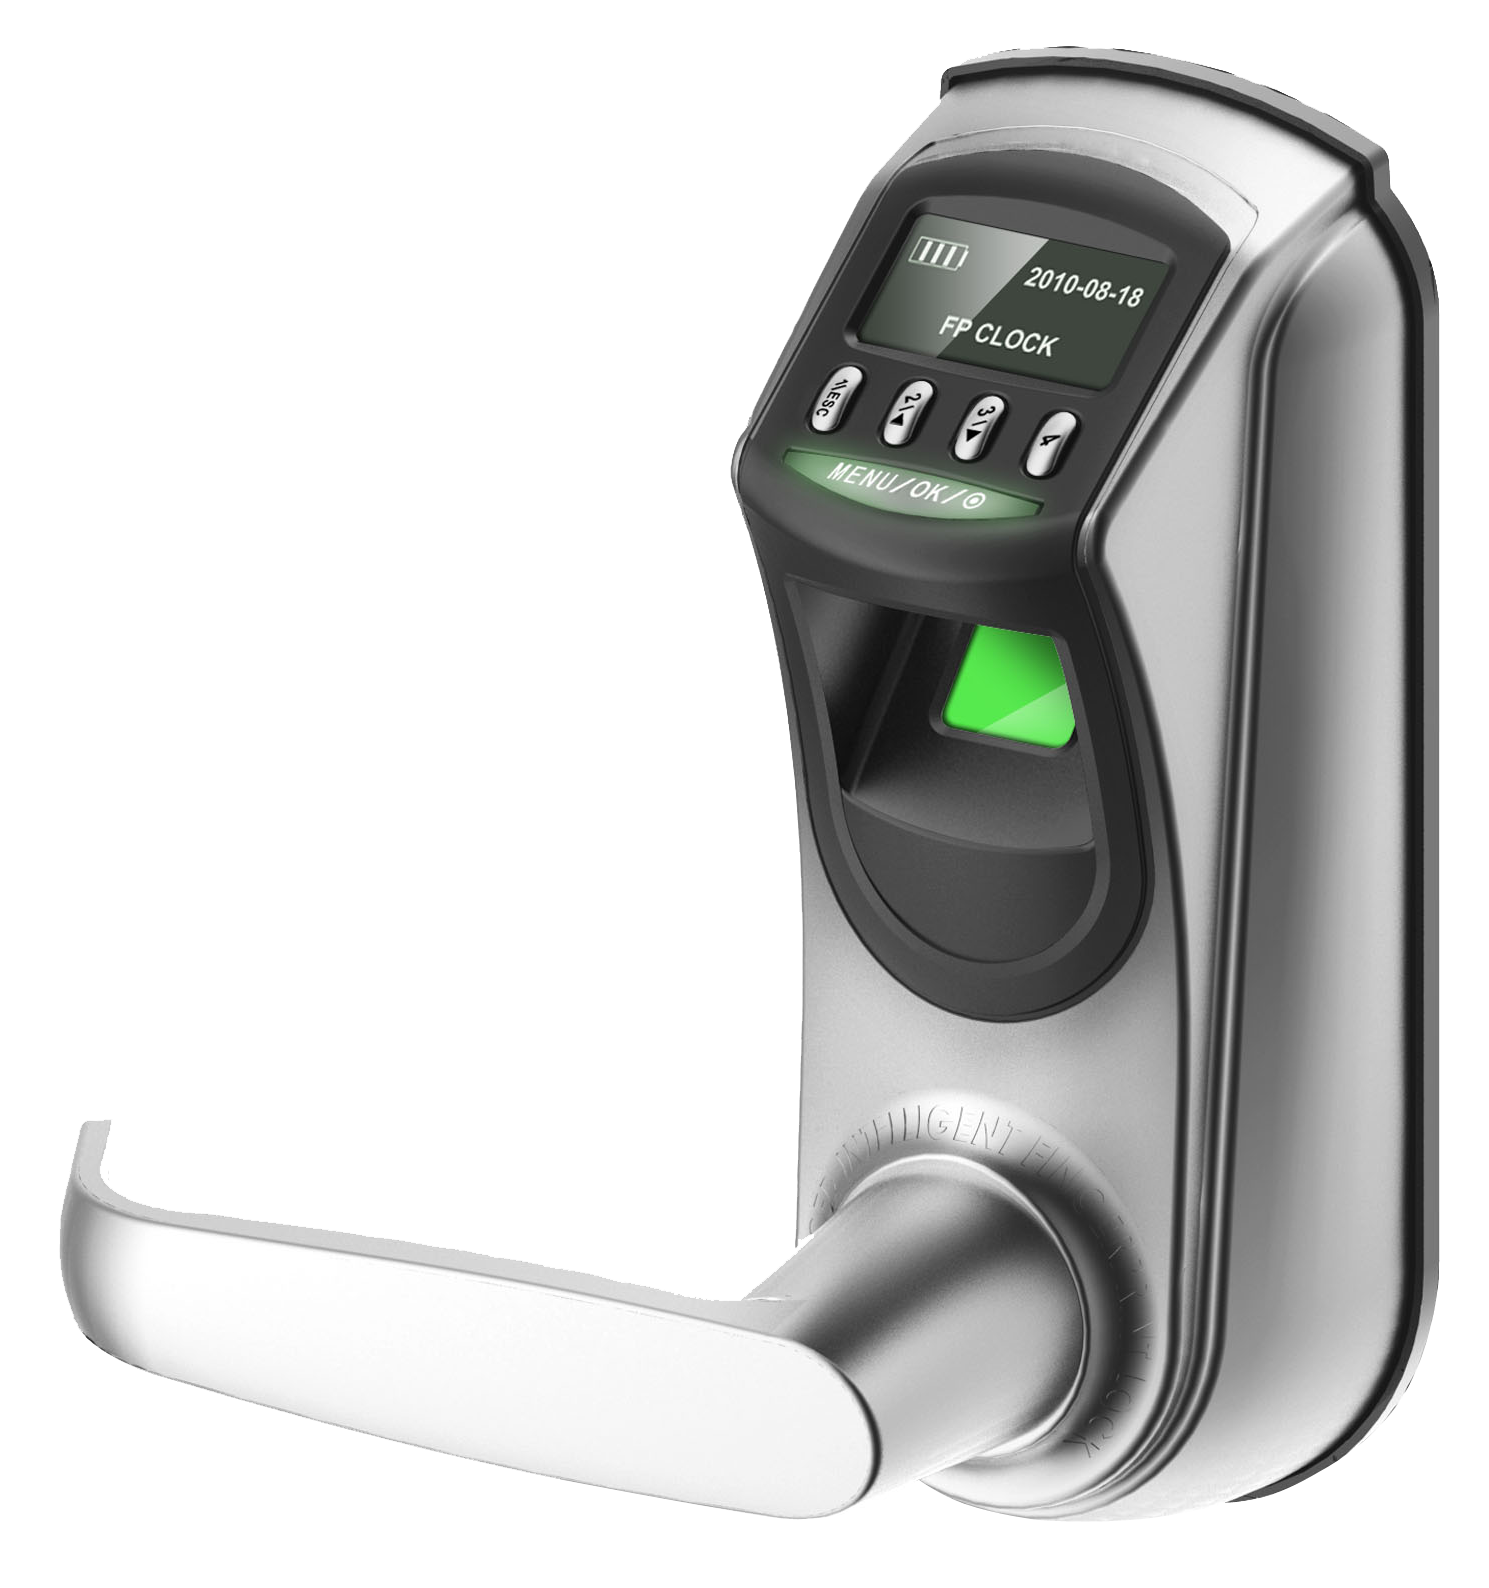 ZK Tech L7000 Biometric Door Lock